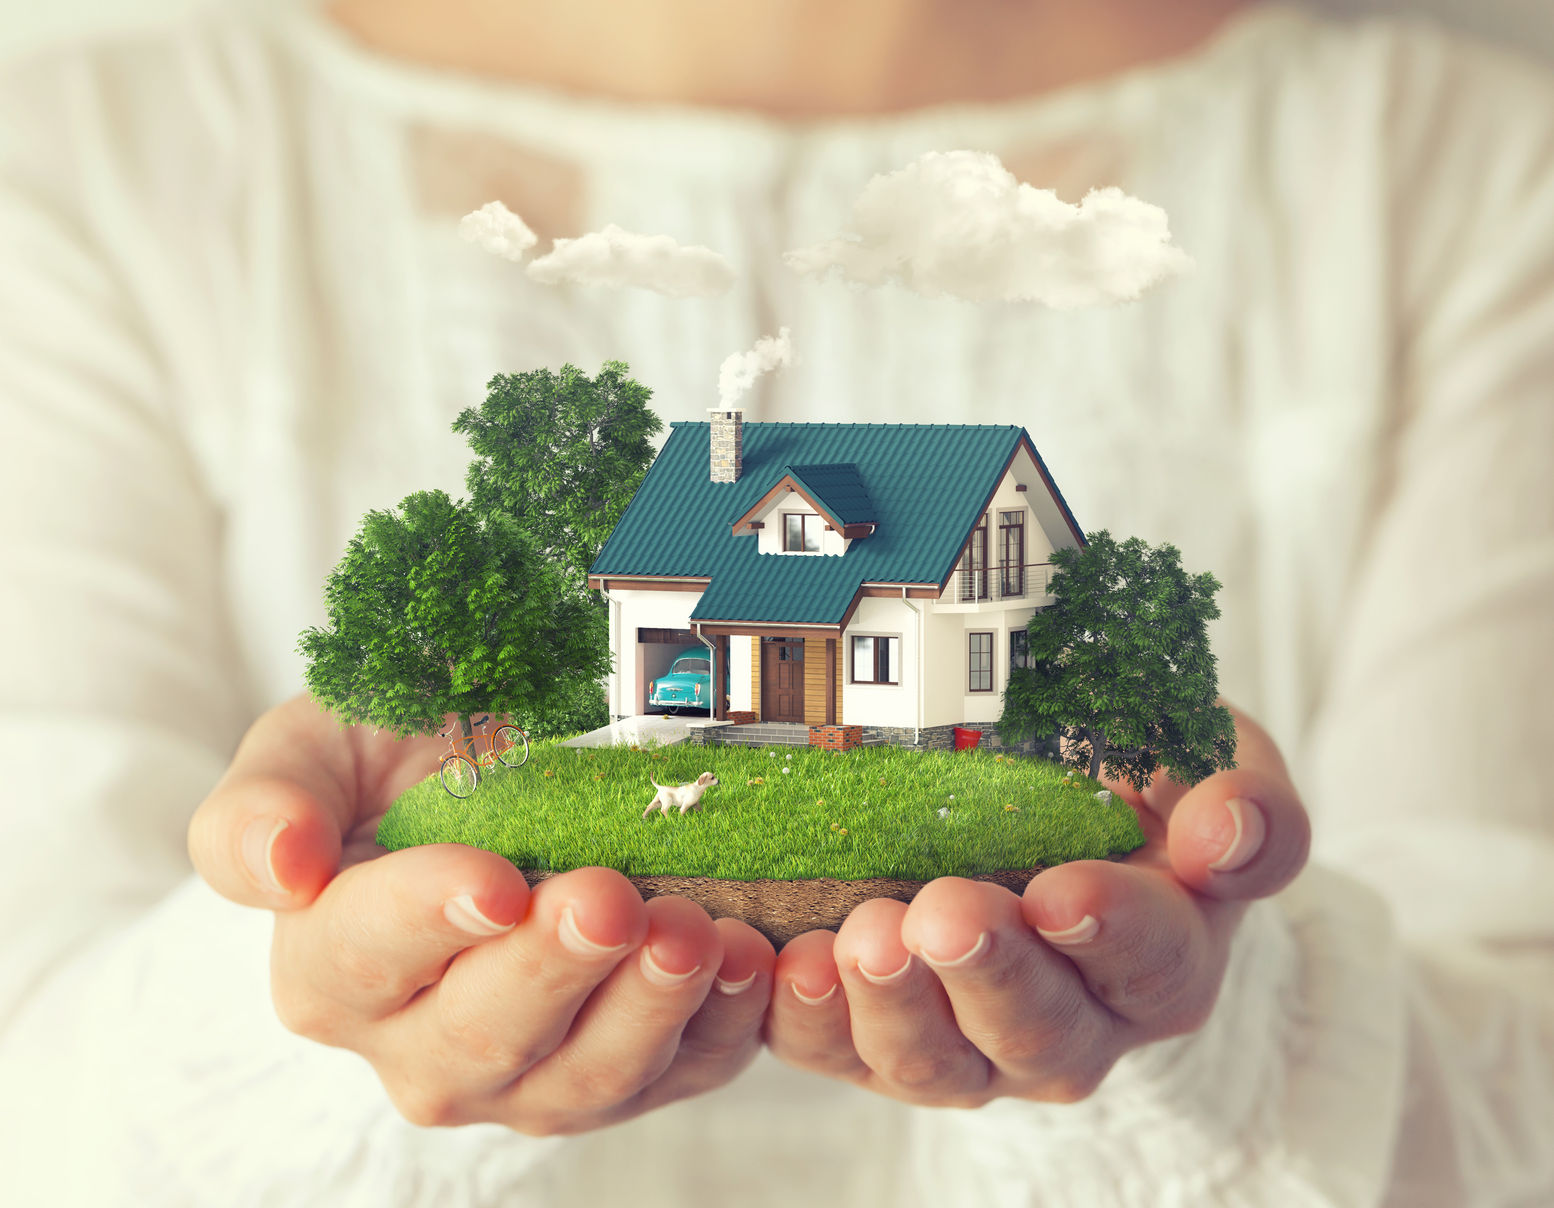 5 reasons why you should invest in good home insurance cover